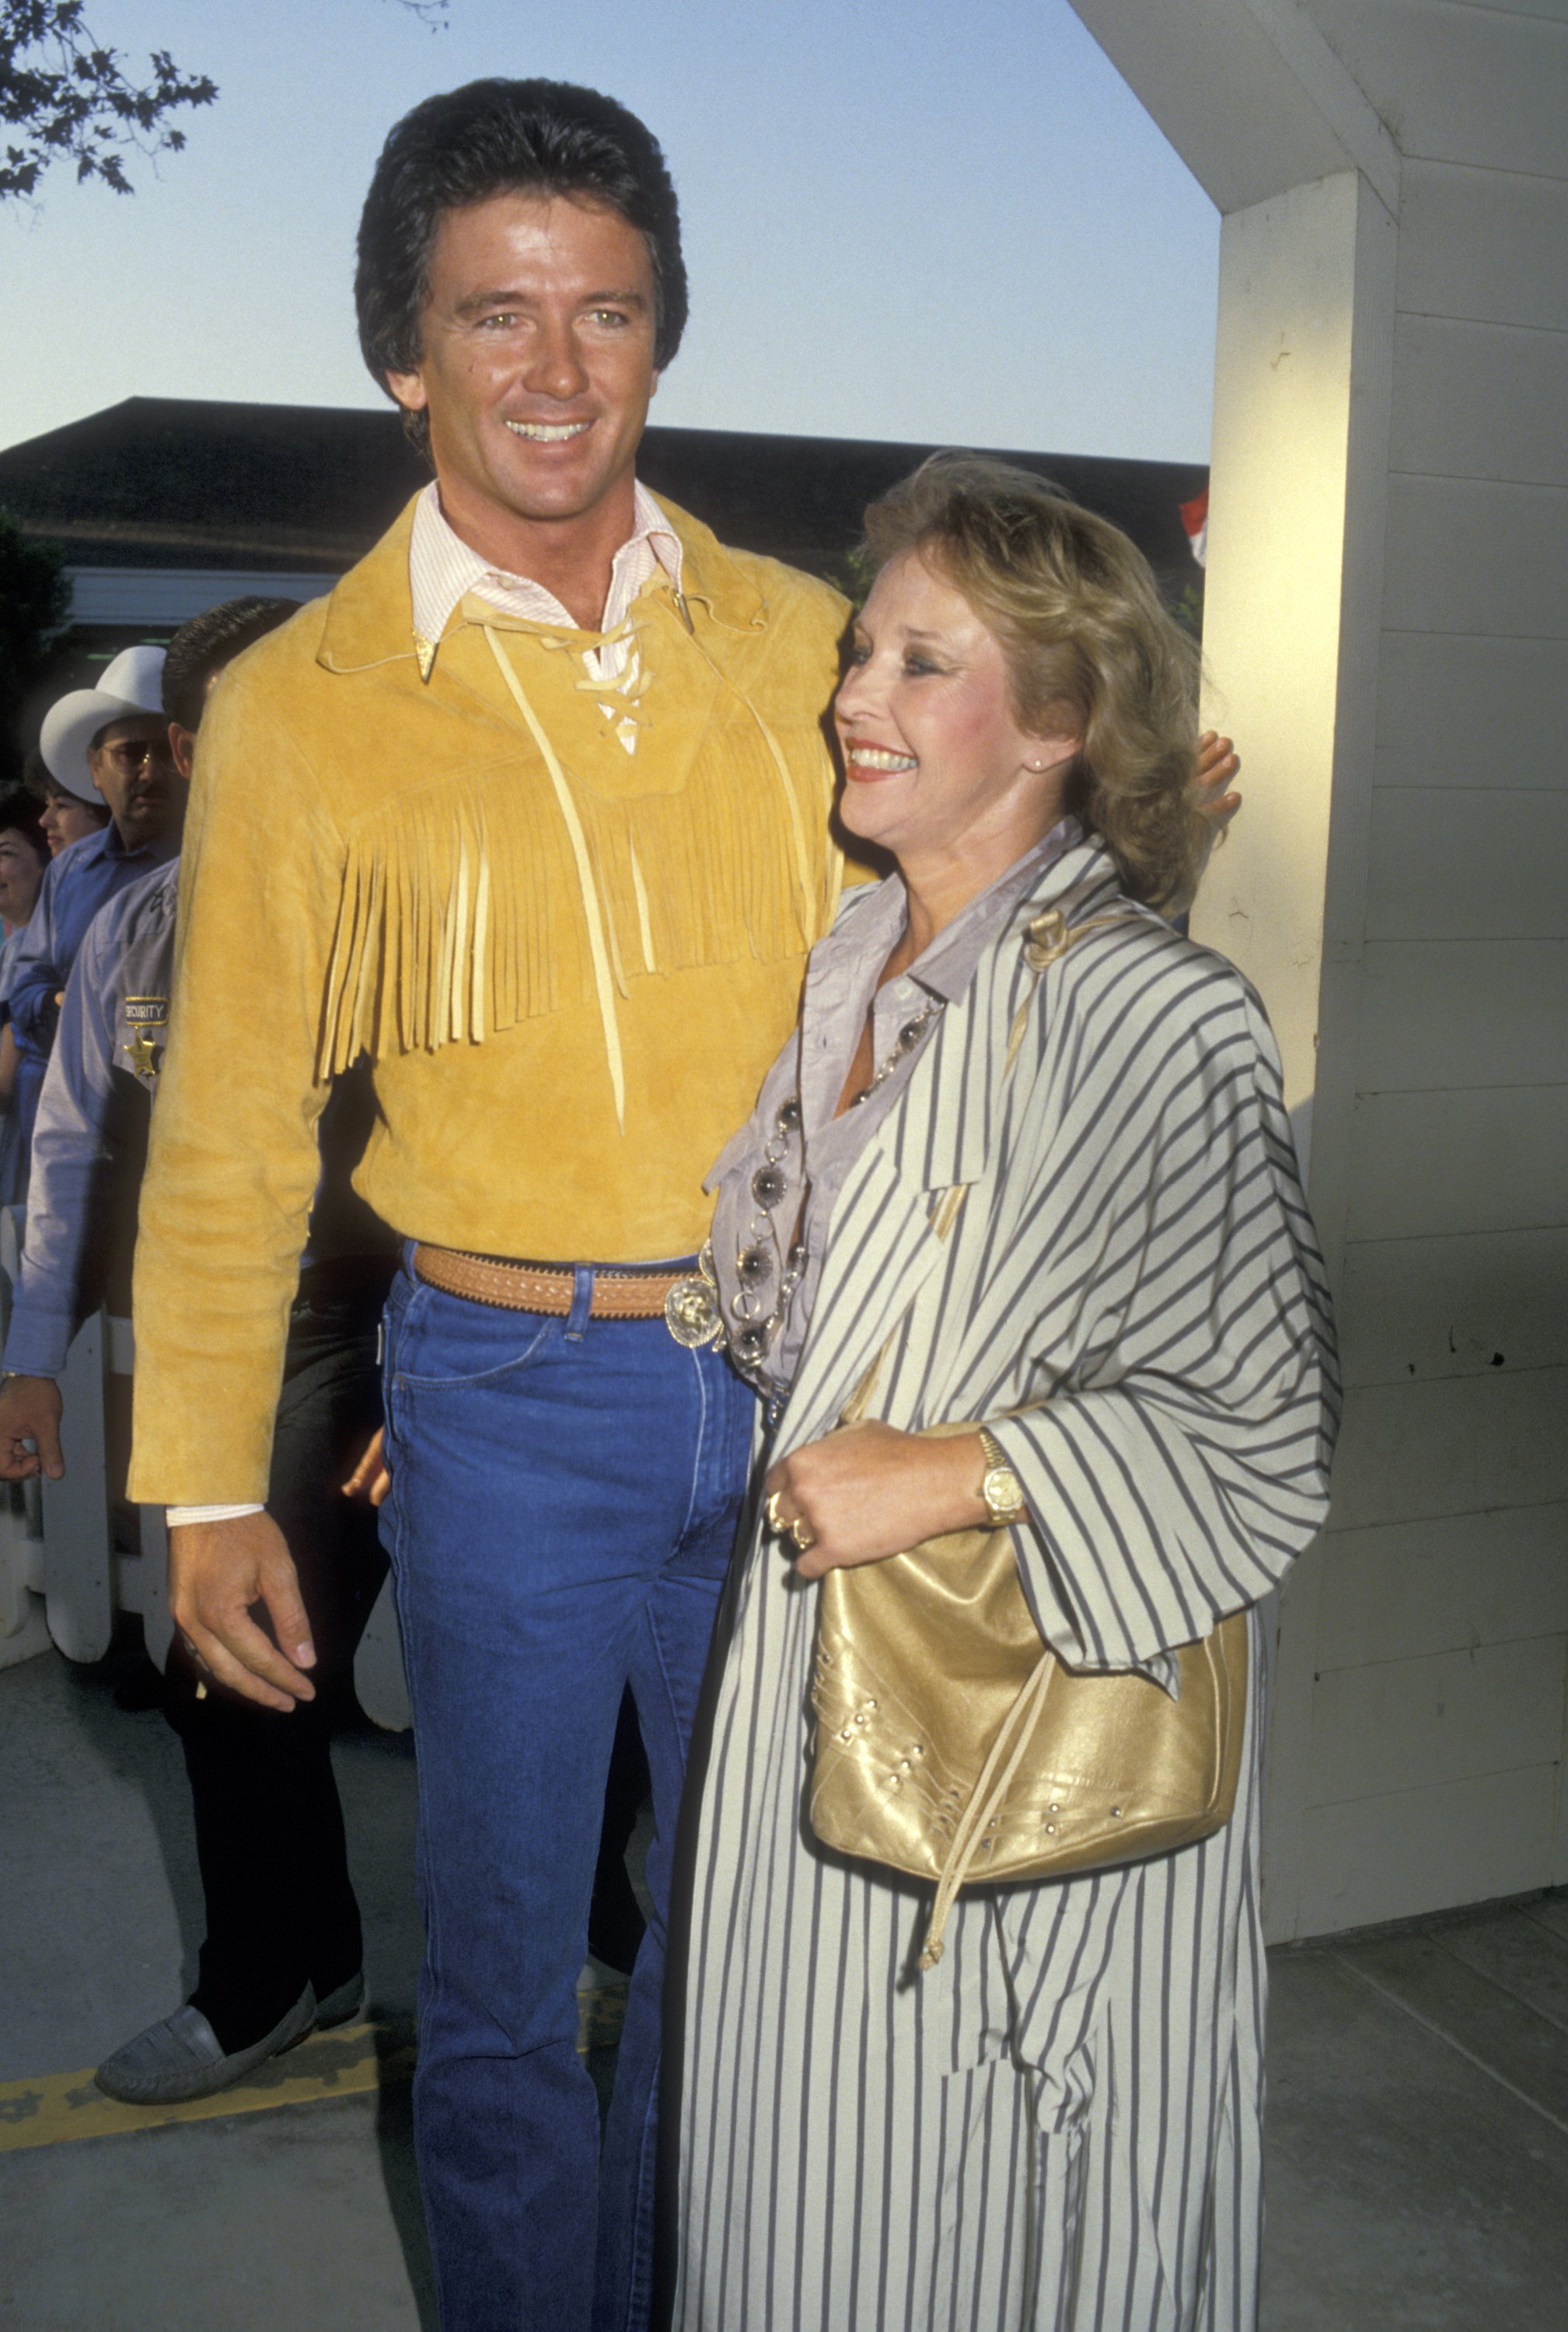 Patrick Duffy and wife Carlyn Rosser attend the Fifth Annual Golden Boot Awards on August 15, 1987 in Burbank, California. | Source: Getty Images